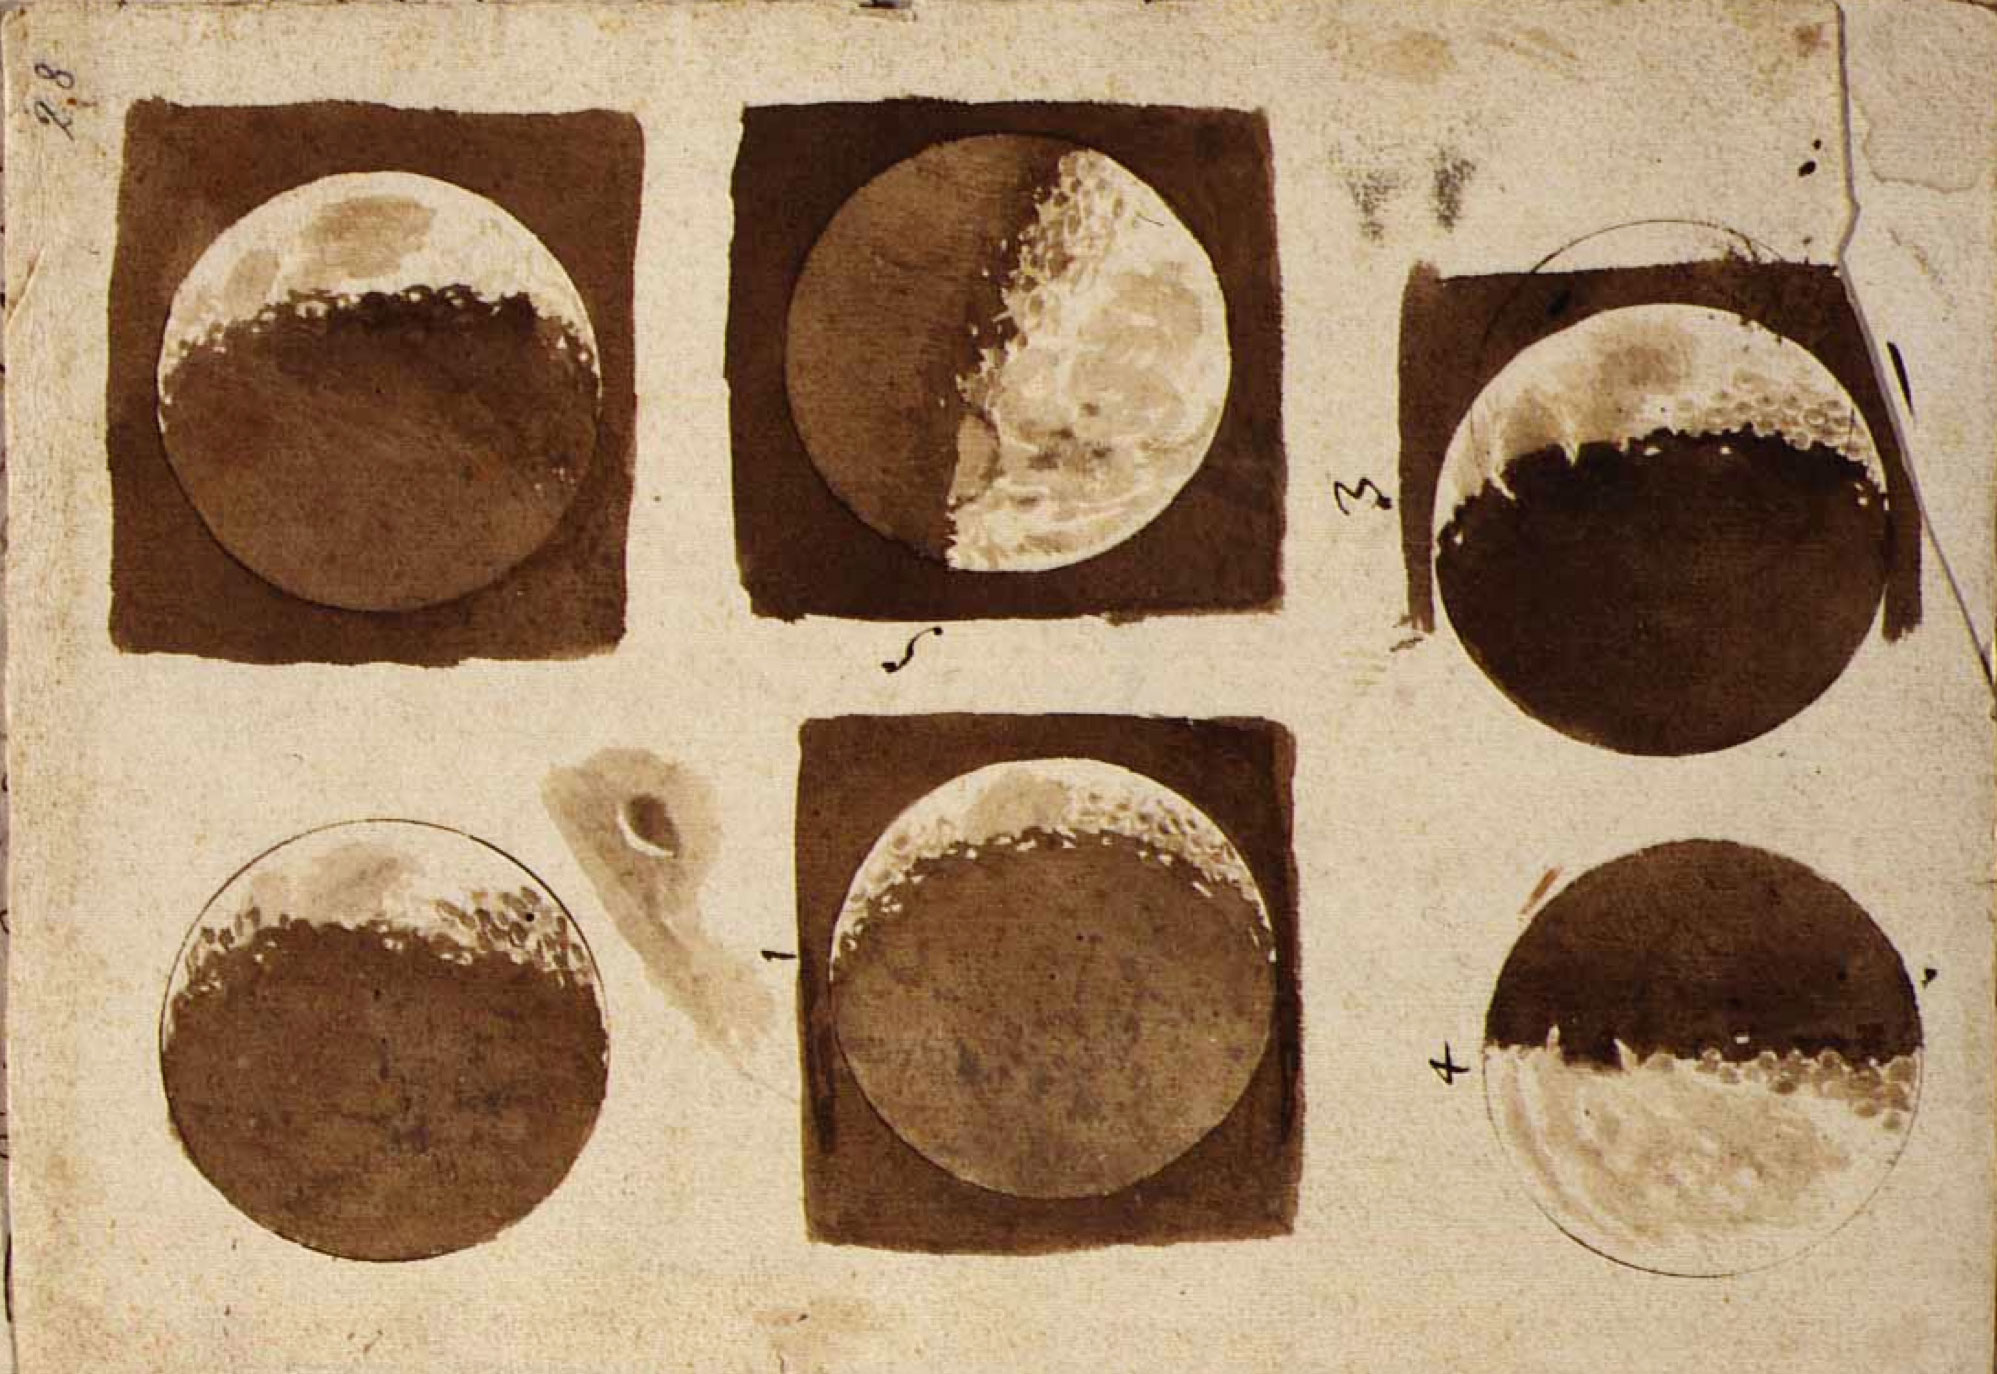 Detail from the moon, 1609, by Galileo Galilei. As reproduced in Universe